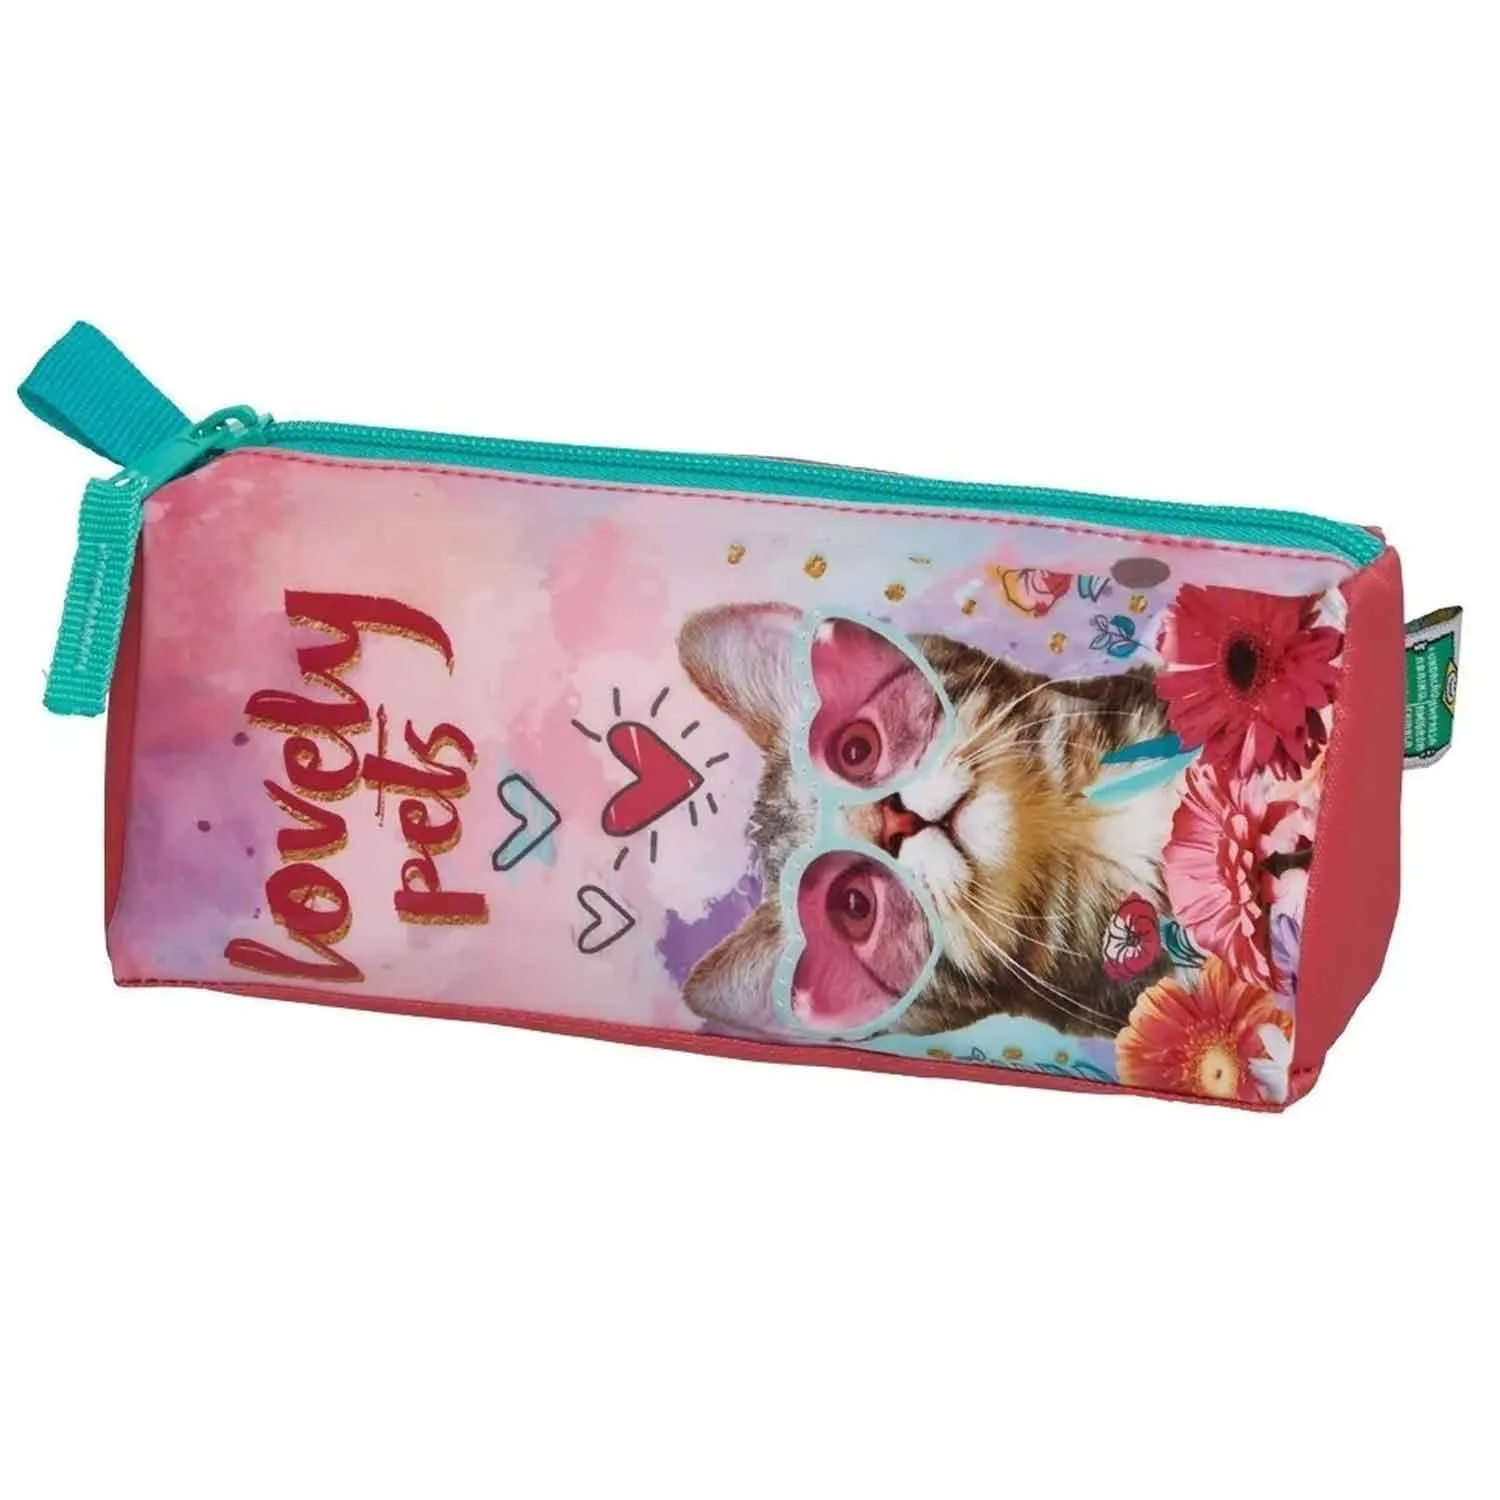 ESTOJO LOVELY PETS COM 1 ZÍPER PACIFIC REF:945B13